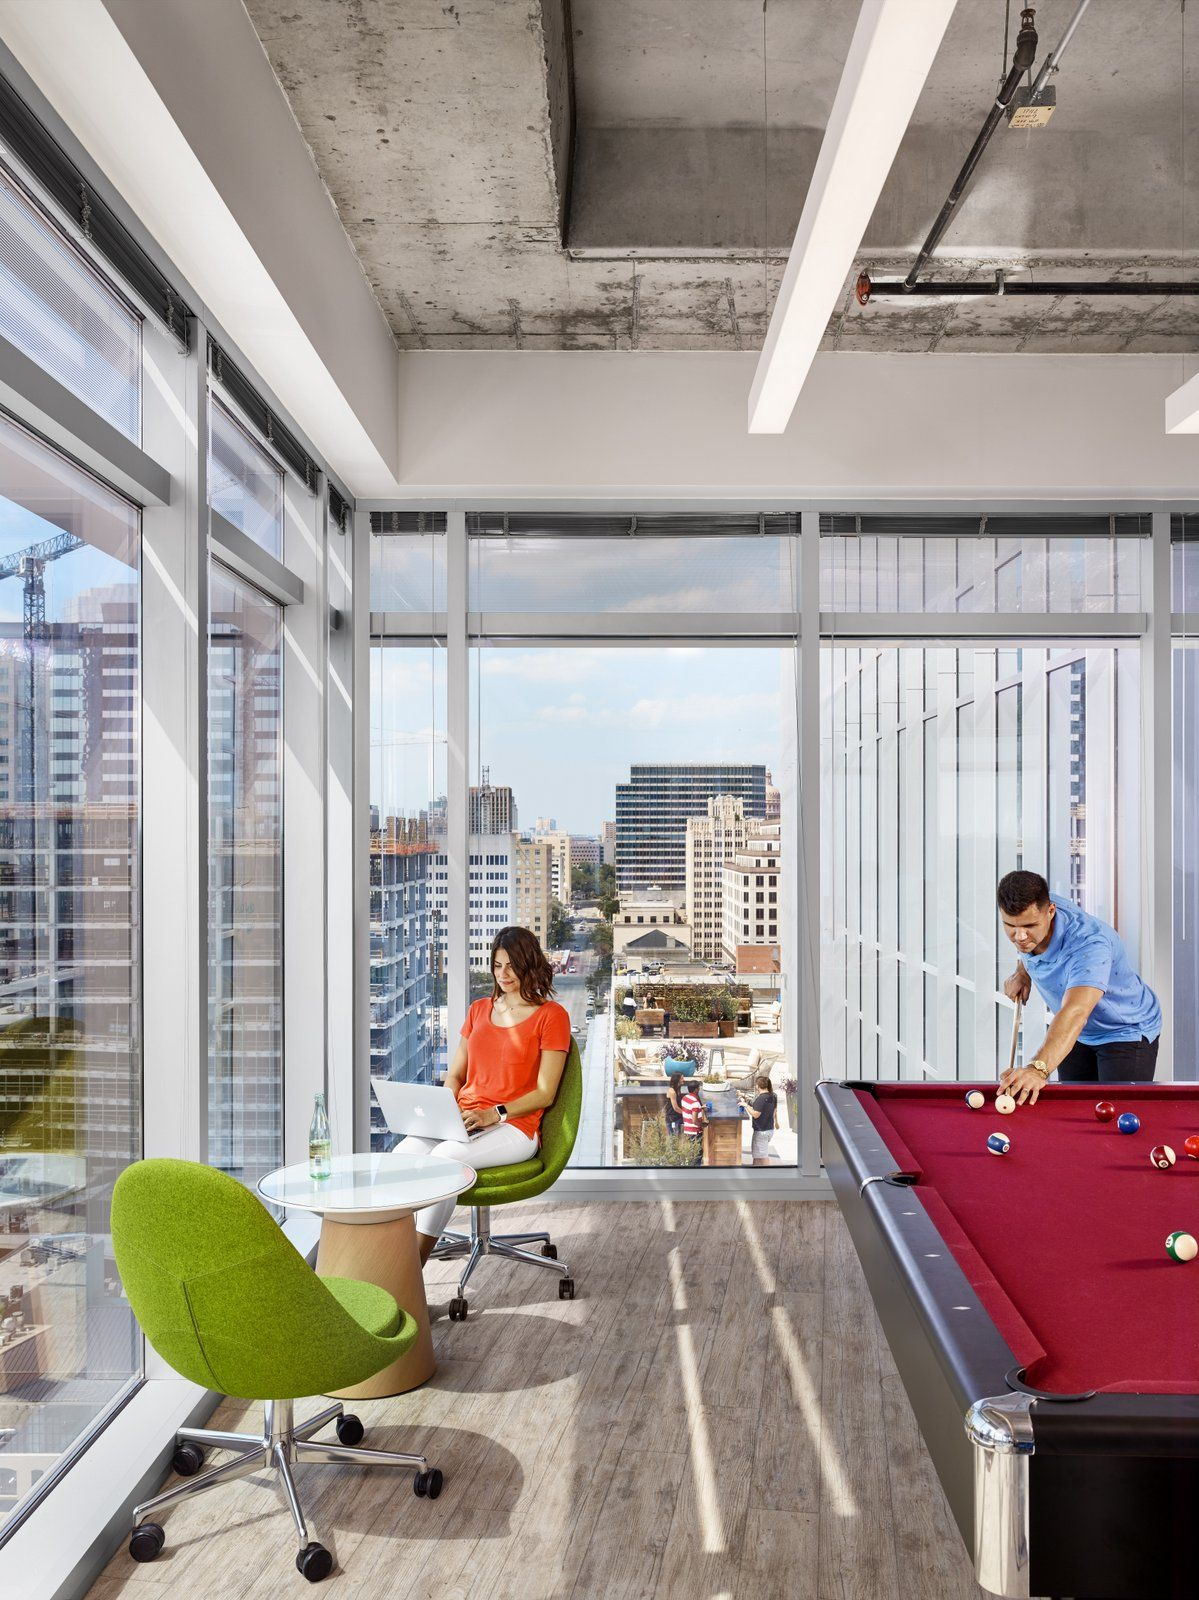 Office Room Design Software: The Playgrounds Of The Adults